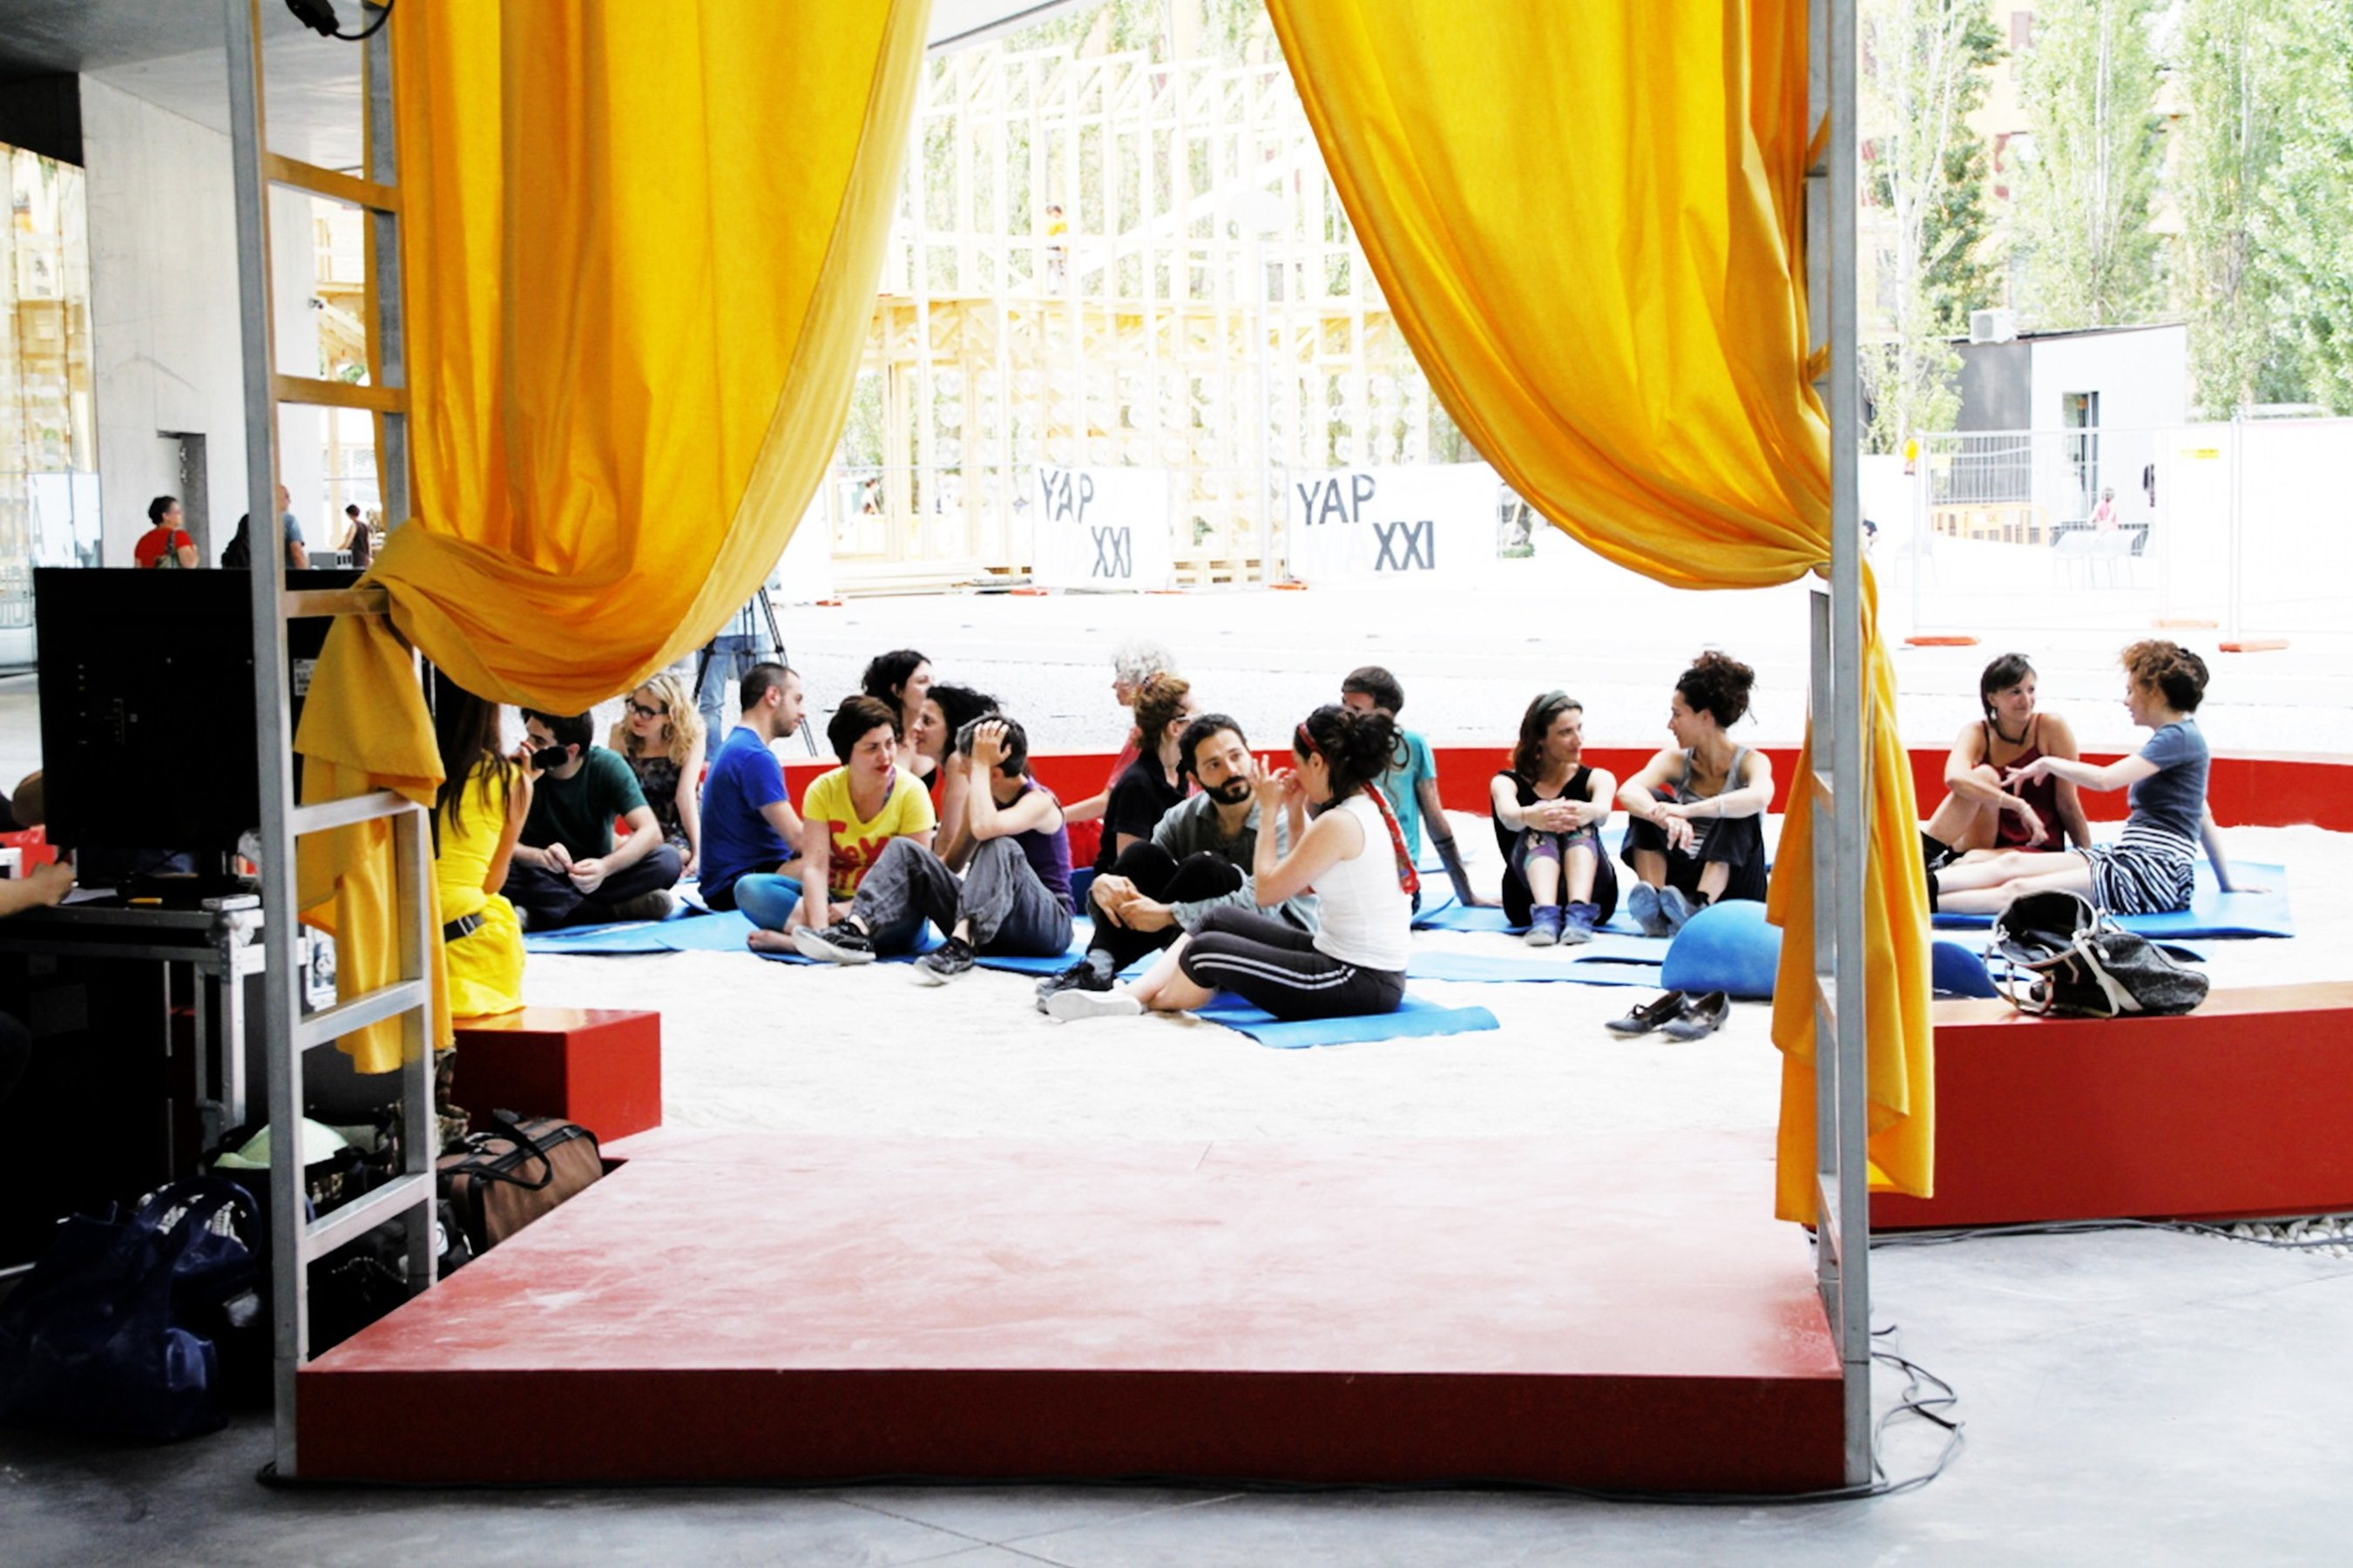 Marinella Senatore The School of Narrative Dance, Roma, 2014 Lessons in the temporary classroom in the piazza outside the Museum